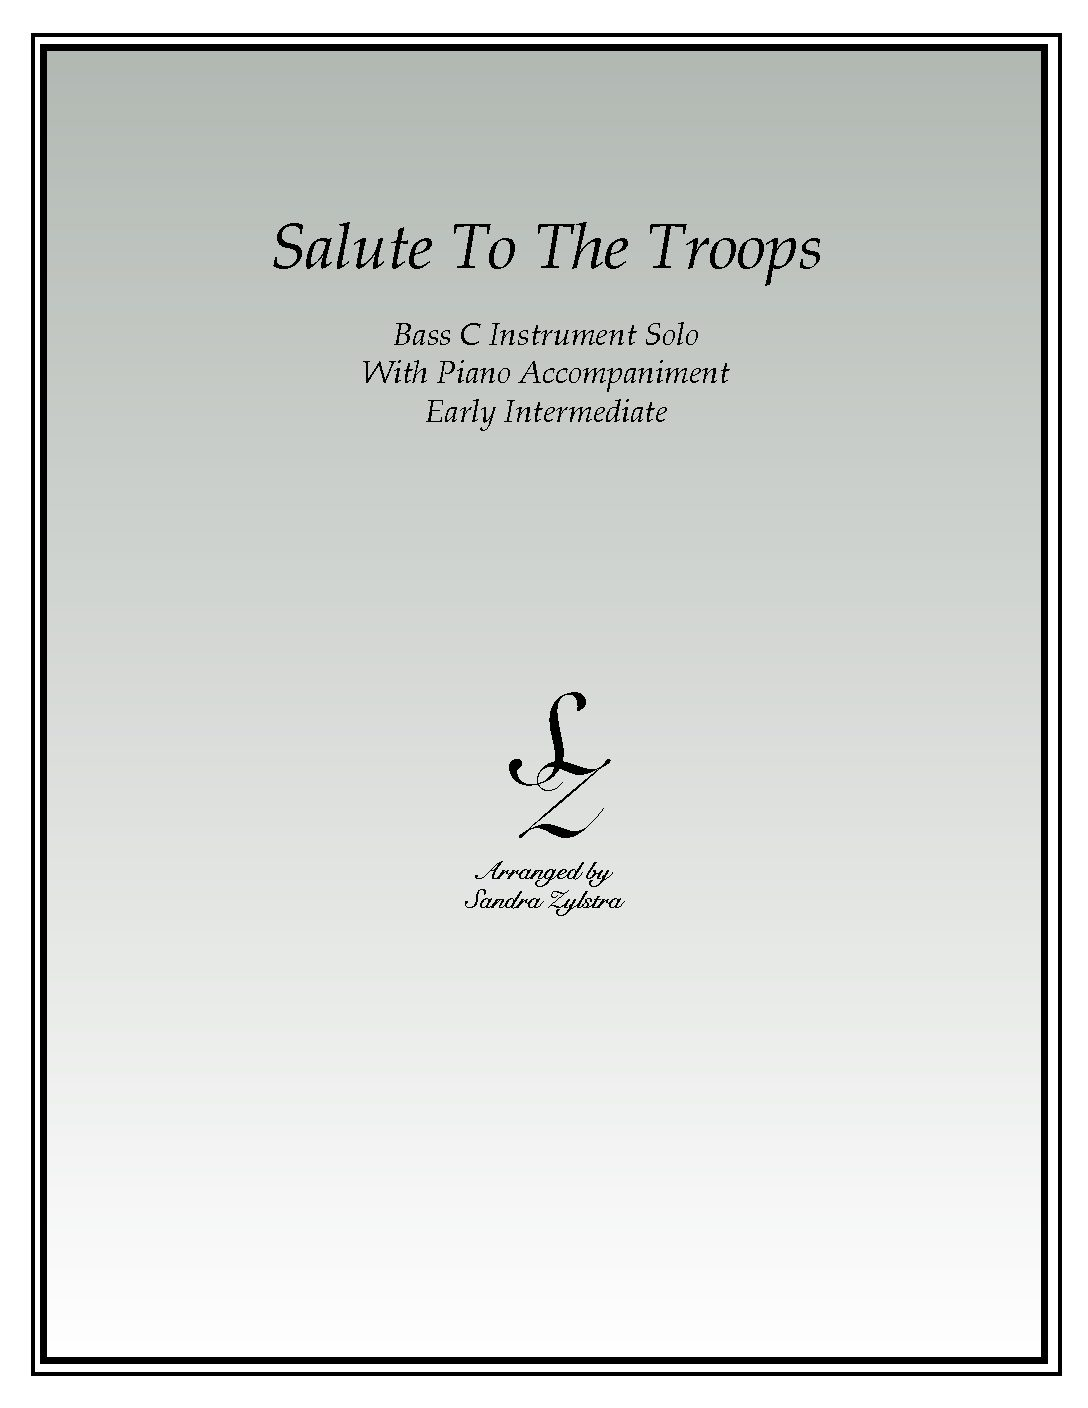 IS 75 Salute To The Troops 05 Bass C pdf